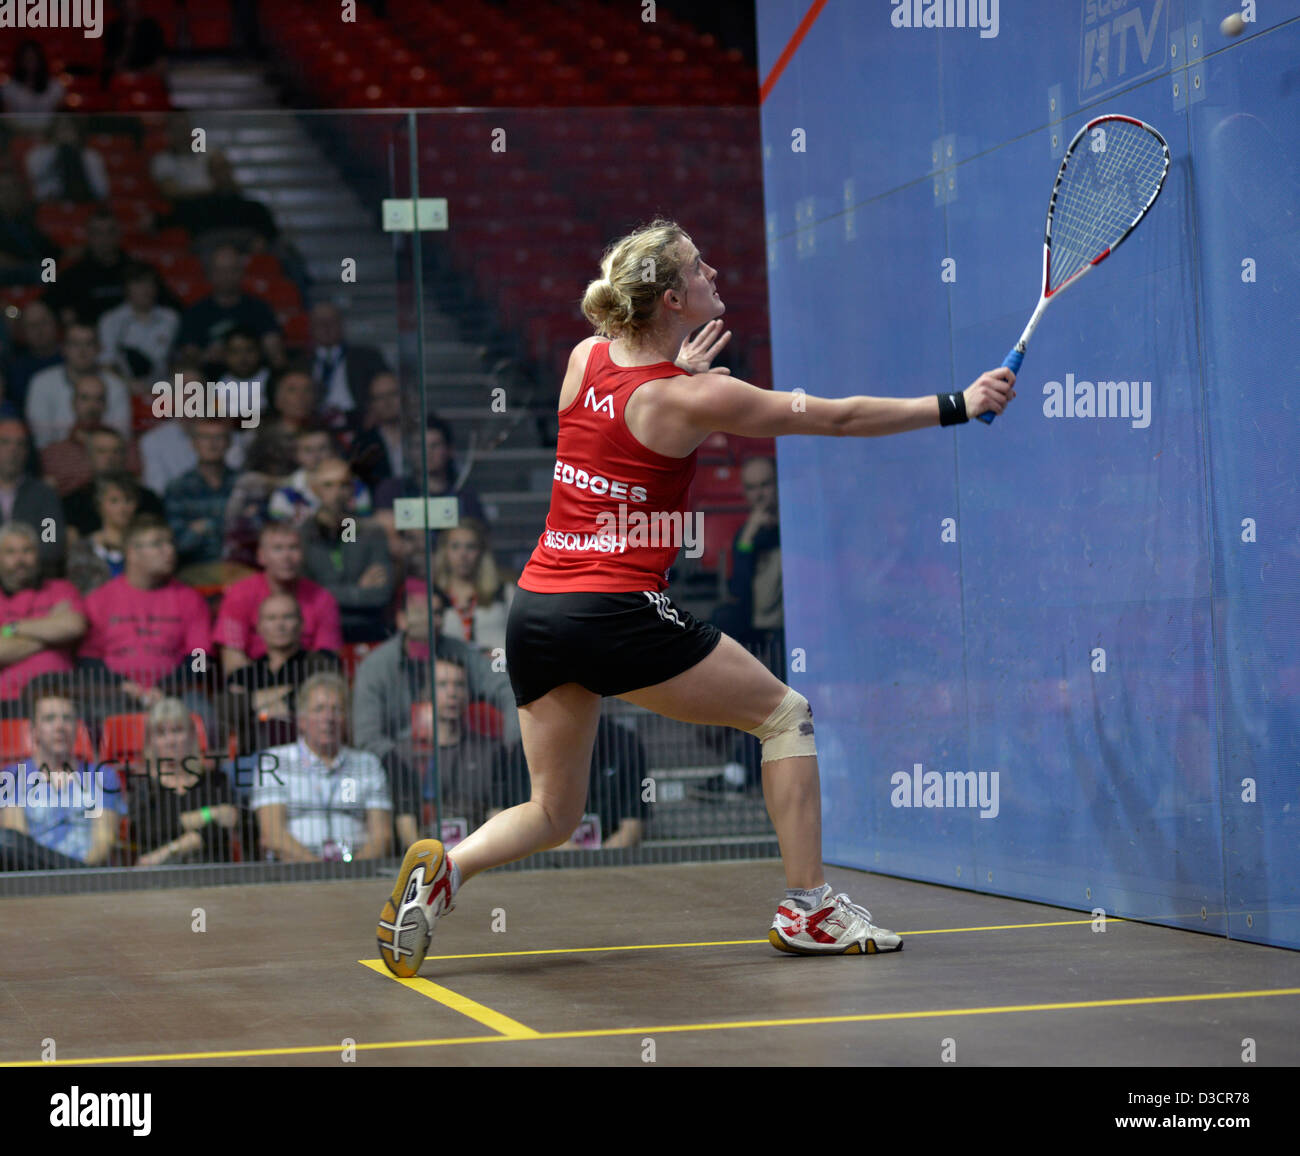 emma beddoes plays a backhand return during her quarter-final match against laura massaro at sportcity, manchester - Stock Image